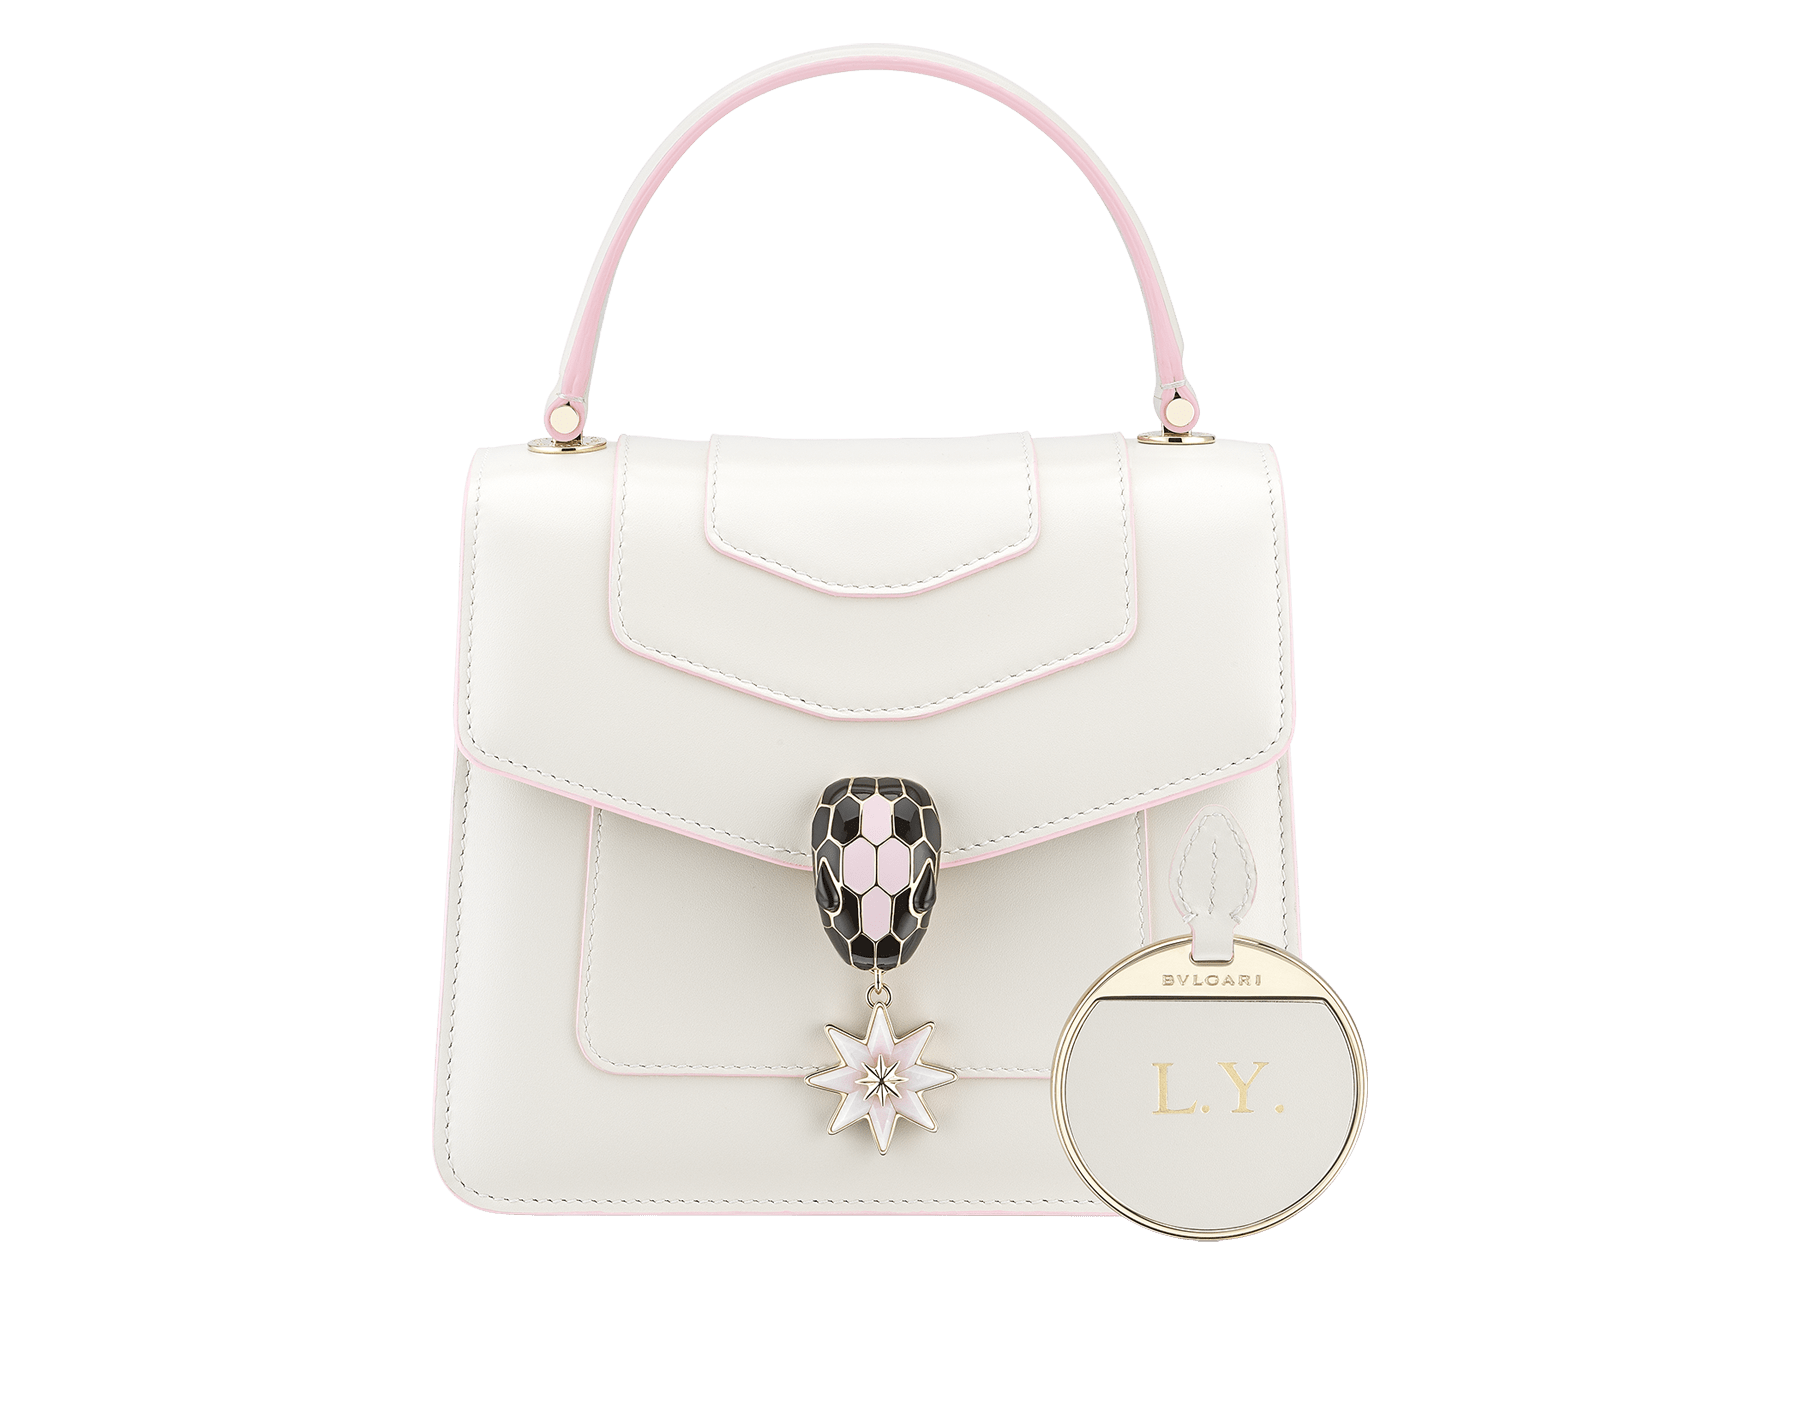 Serpenti Forever Holiday Season crossbody bag in white agate calf leather, bronze and silver brushed metallic calf leather. Snakehead closure in light gold plated brass embellished with black and sakura pink enamel, black onyx eyes and a pink opal eight-pointed star charm. 289372 image 3